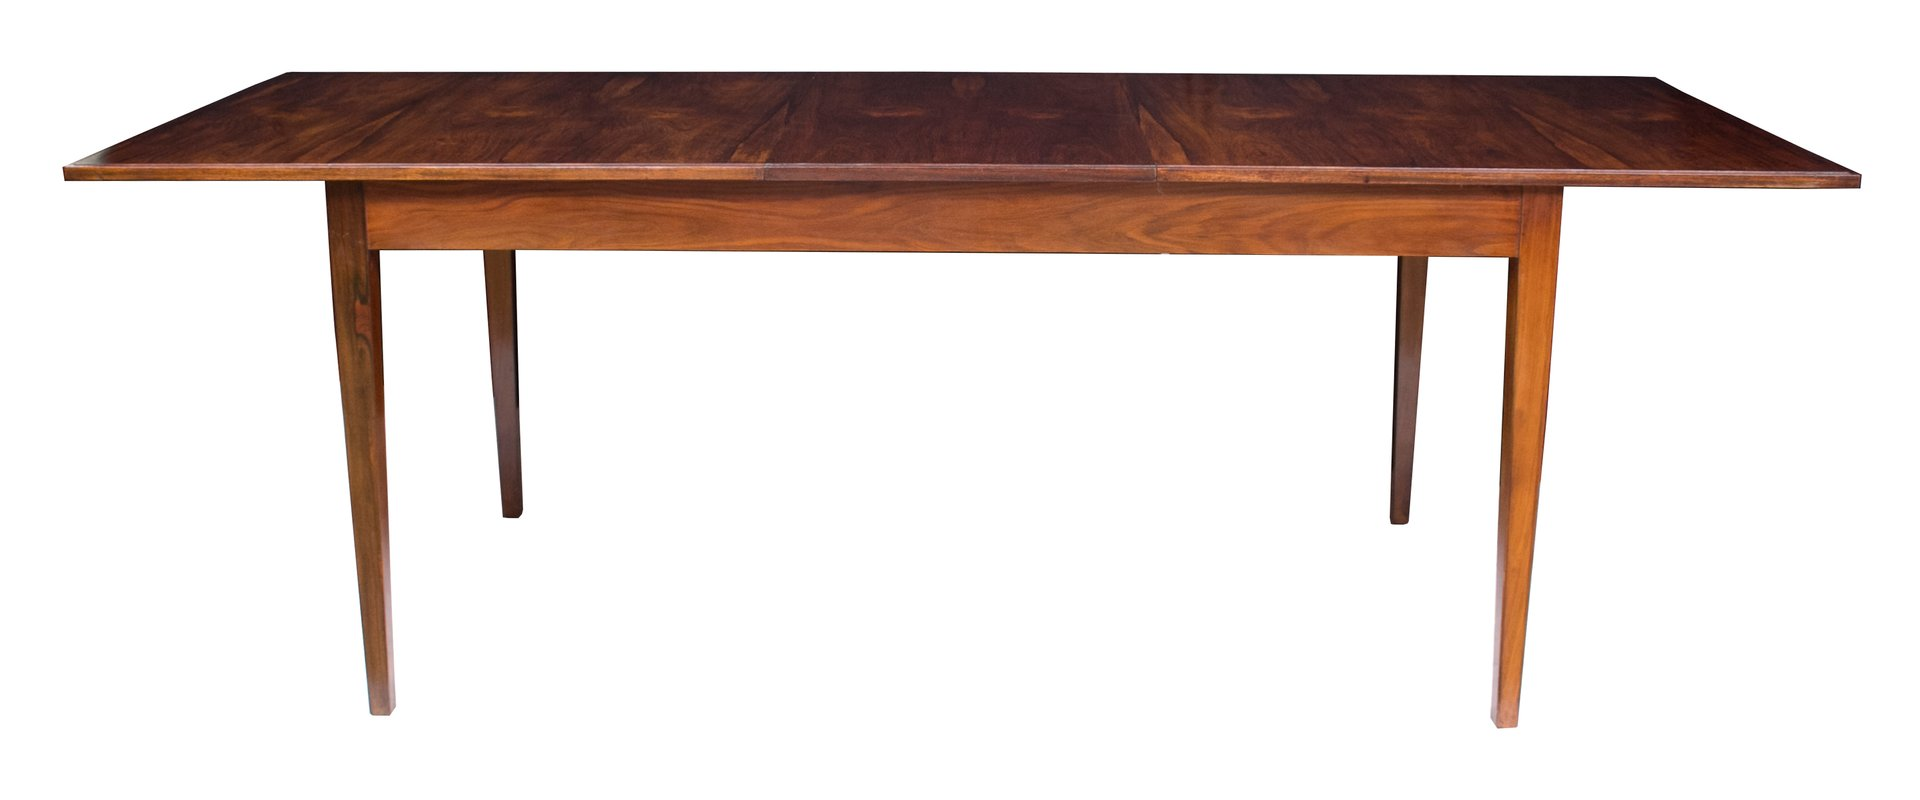 Rosewood Dining Table By Robert Heritage For Archie Shine, 1960s 4.  $2,770.00. Price Per Piece